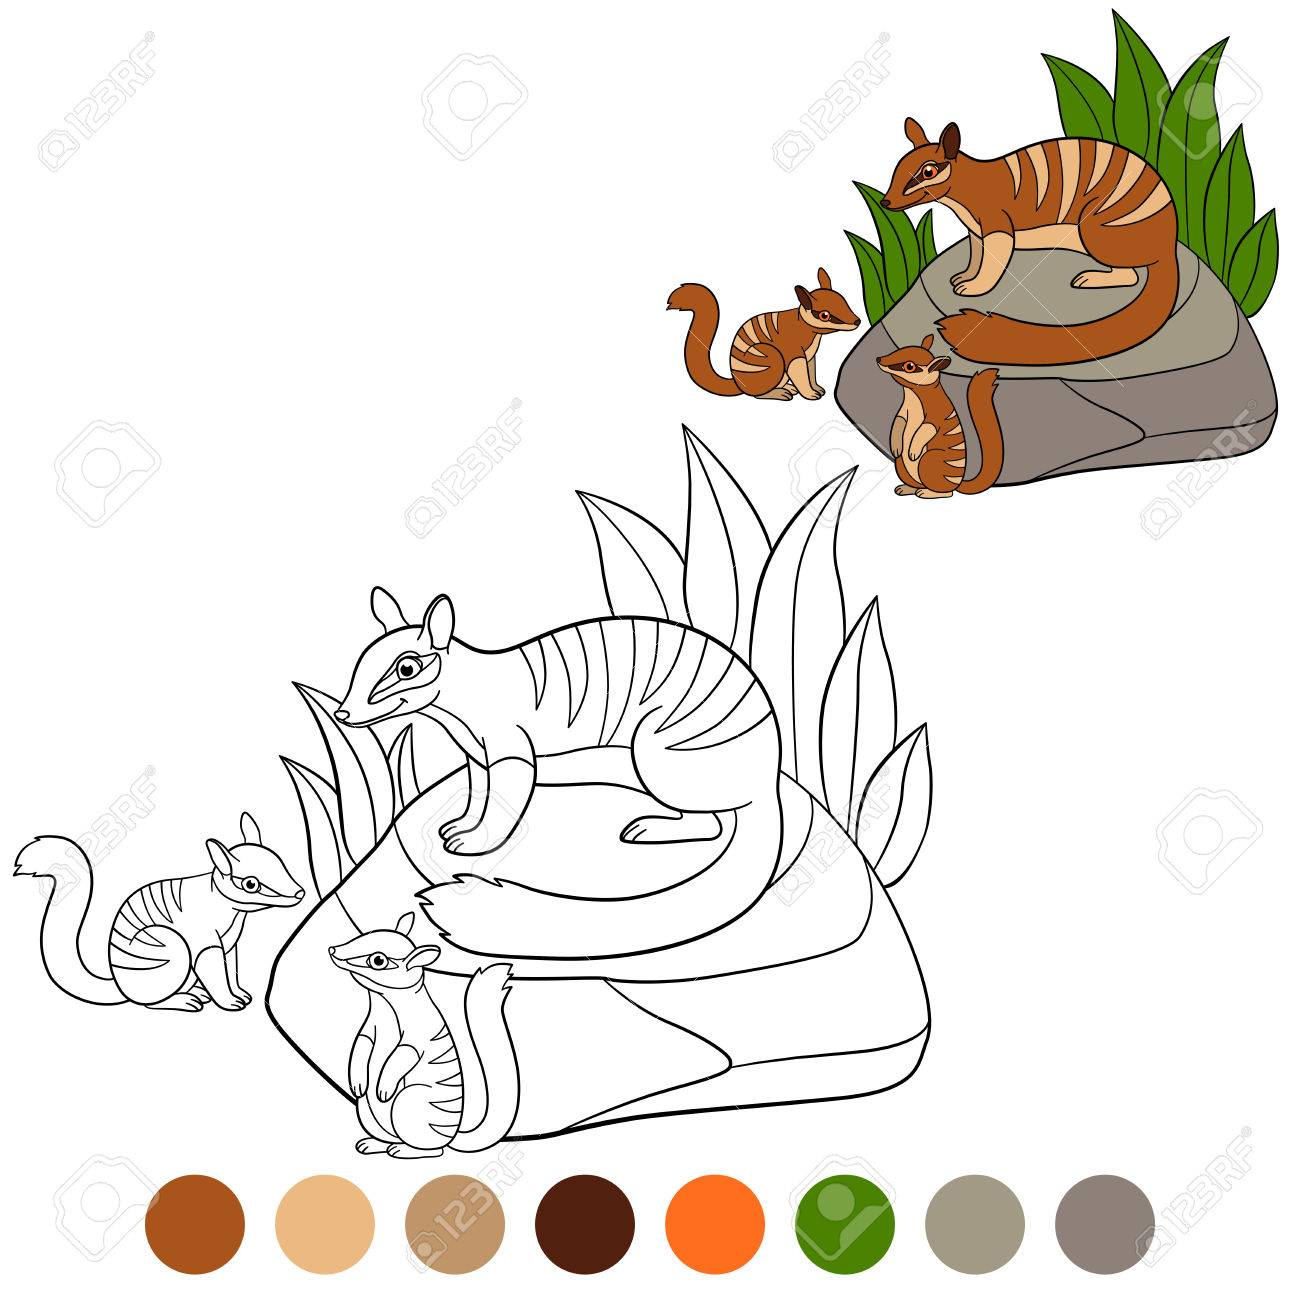 Coloring Page. Mother Numbat With Her Little Cute Babies. Stock Vector    83312049